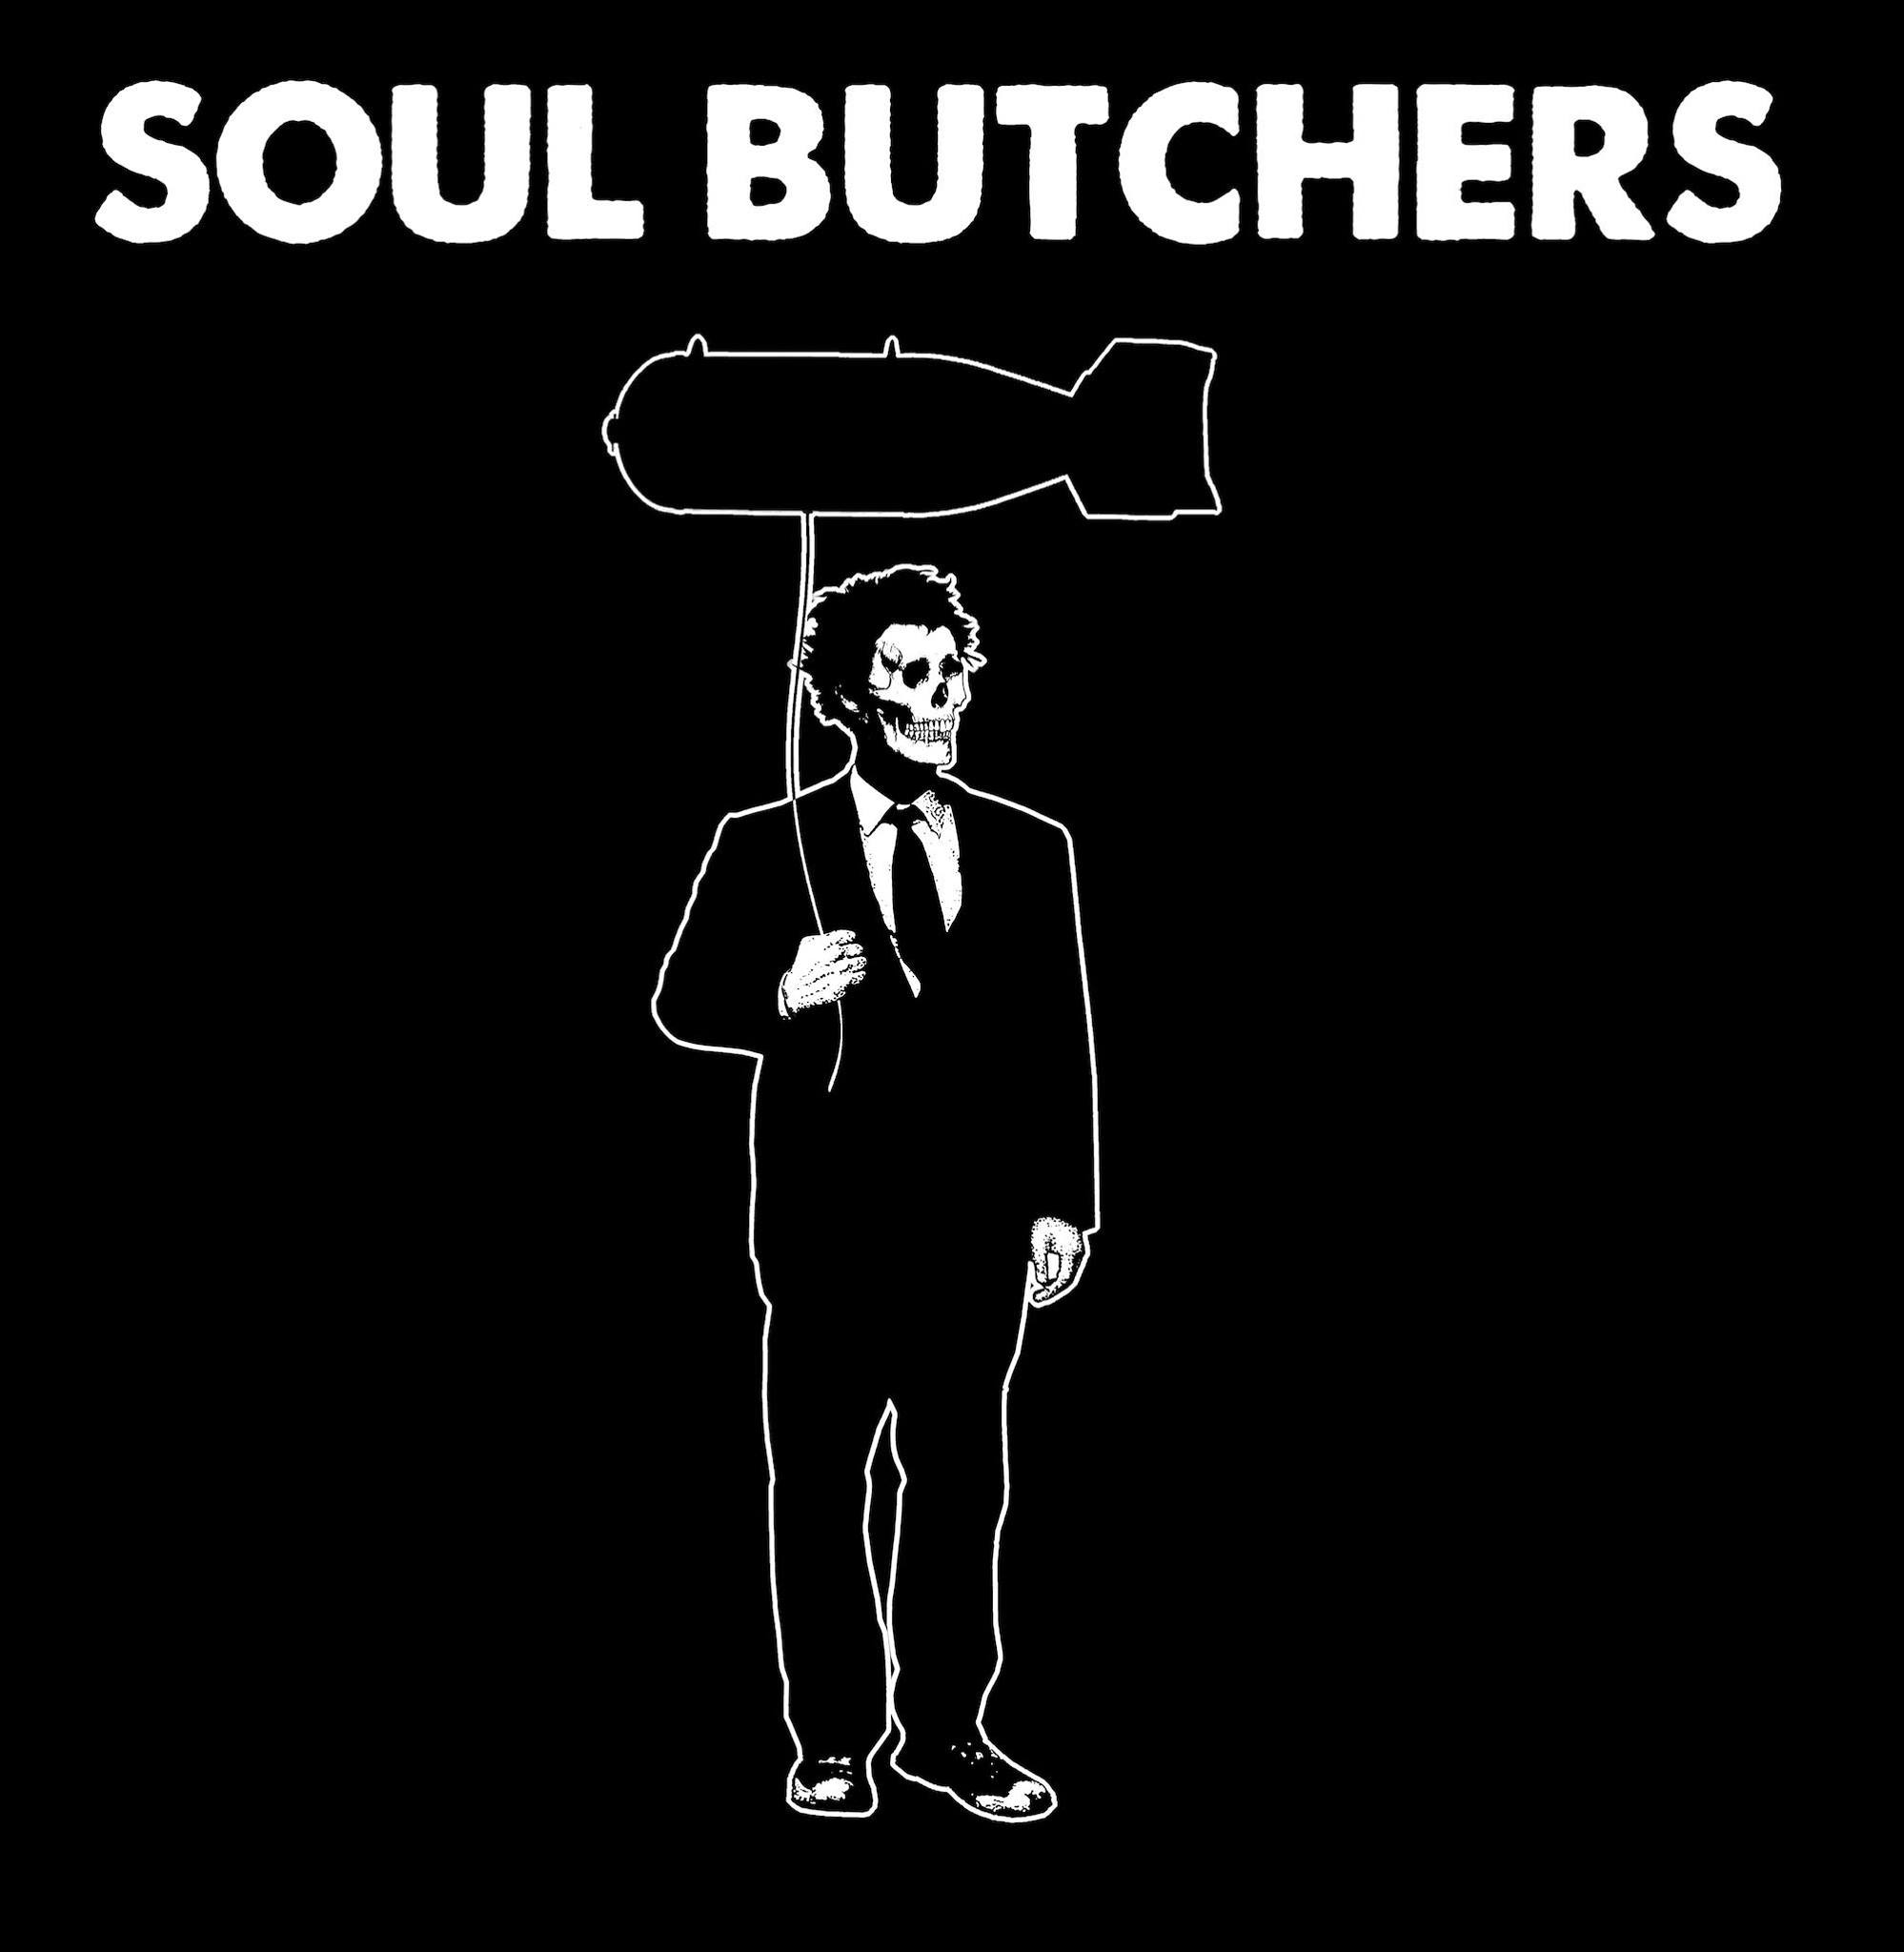 SOUL BUTCHERS